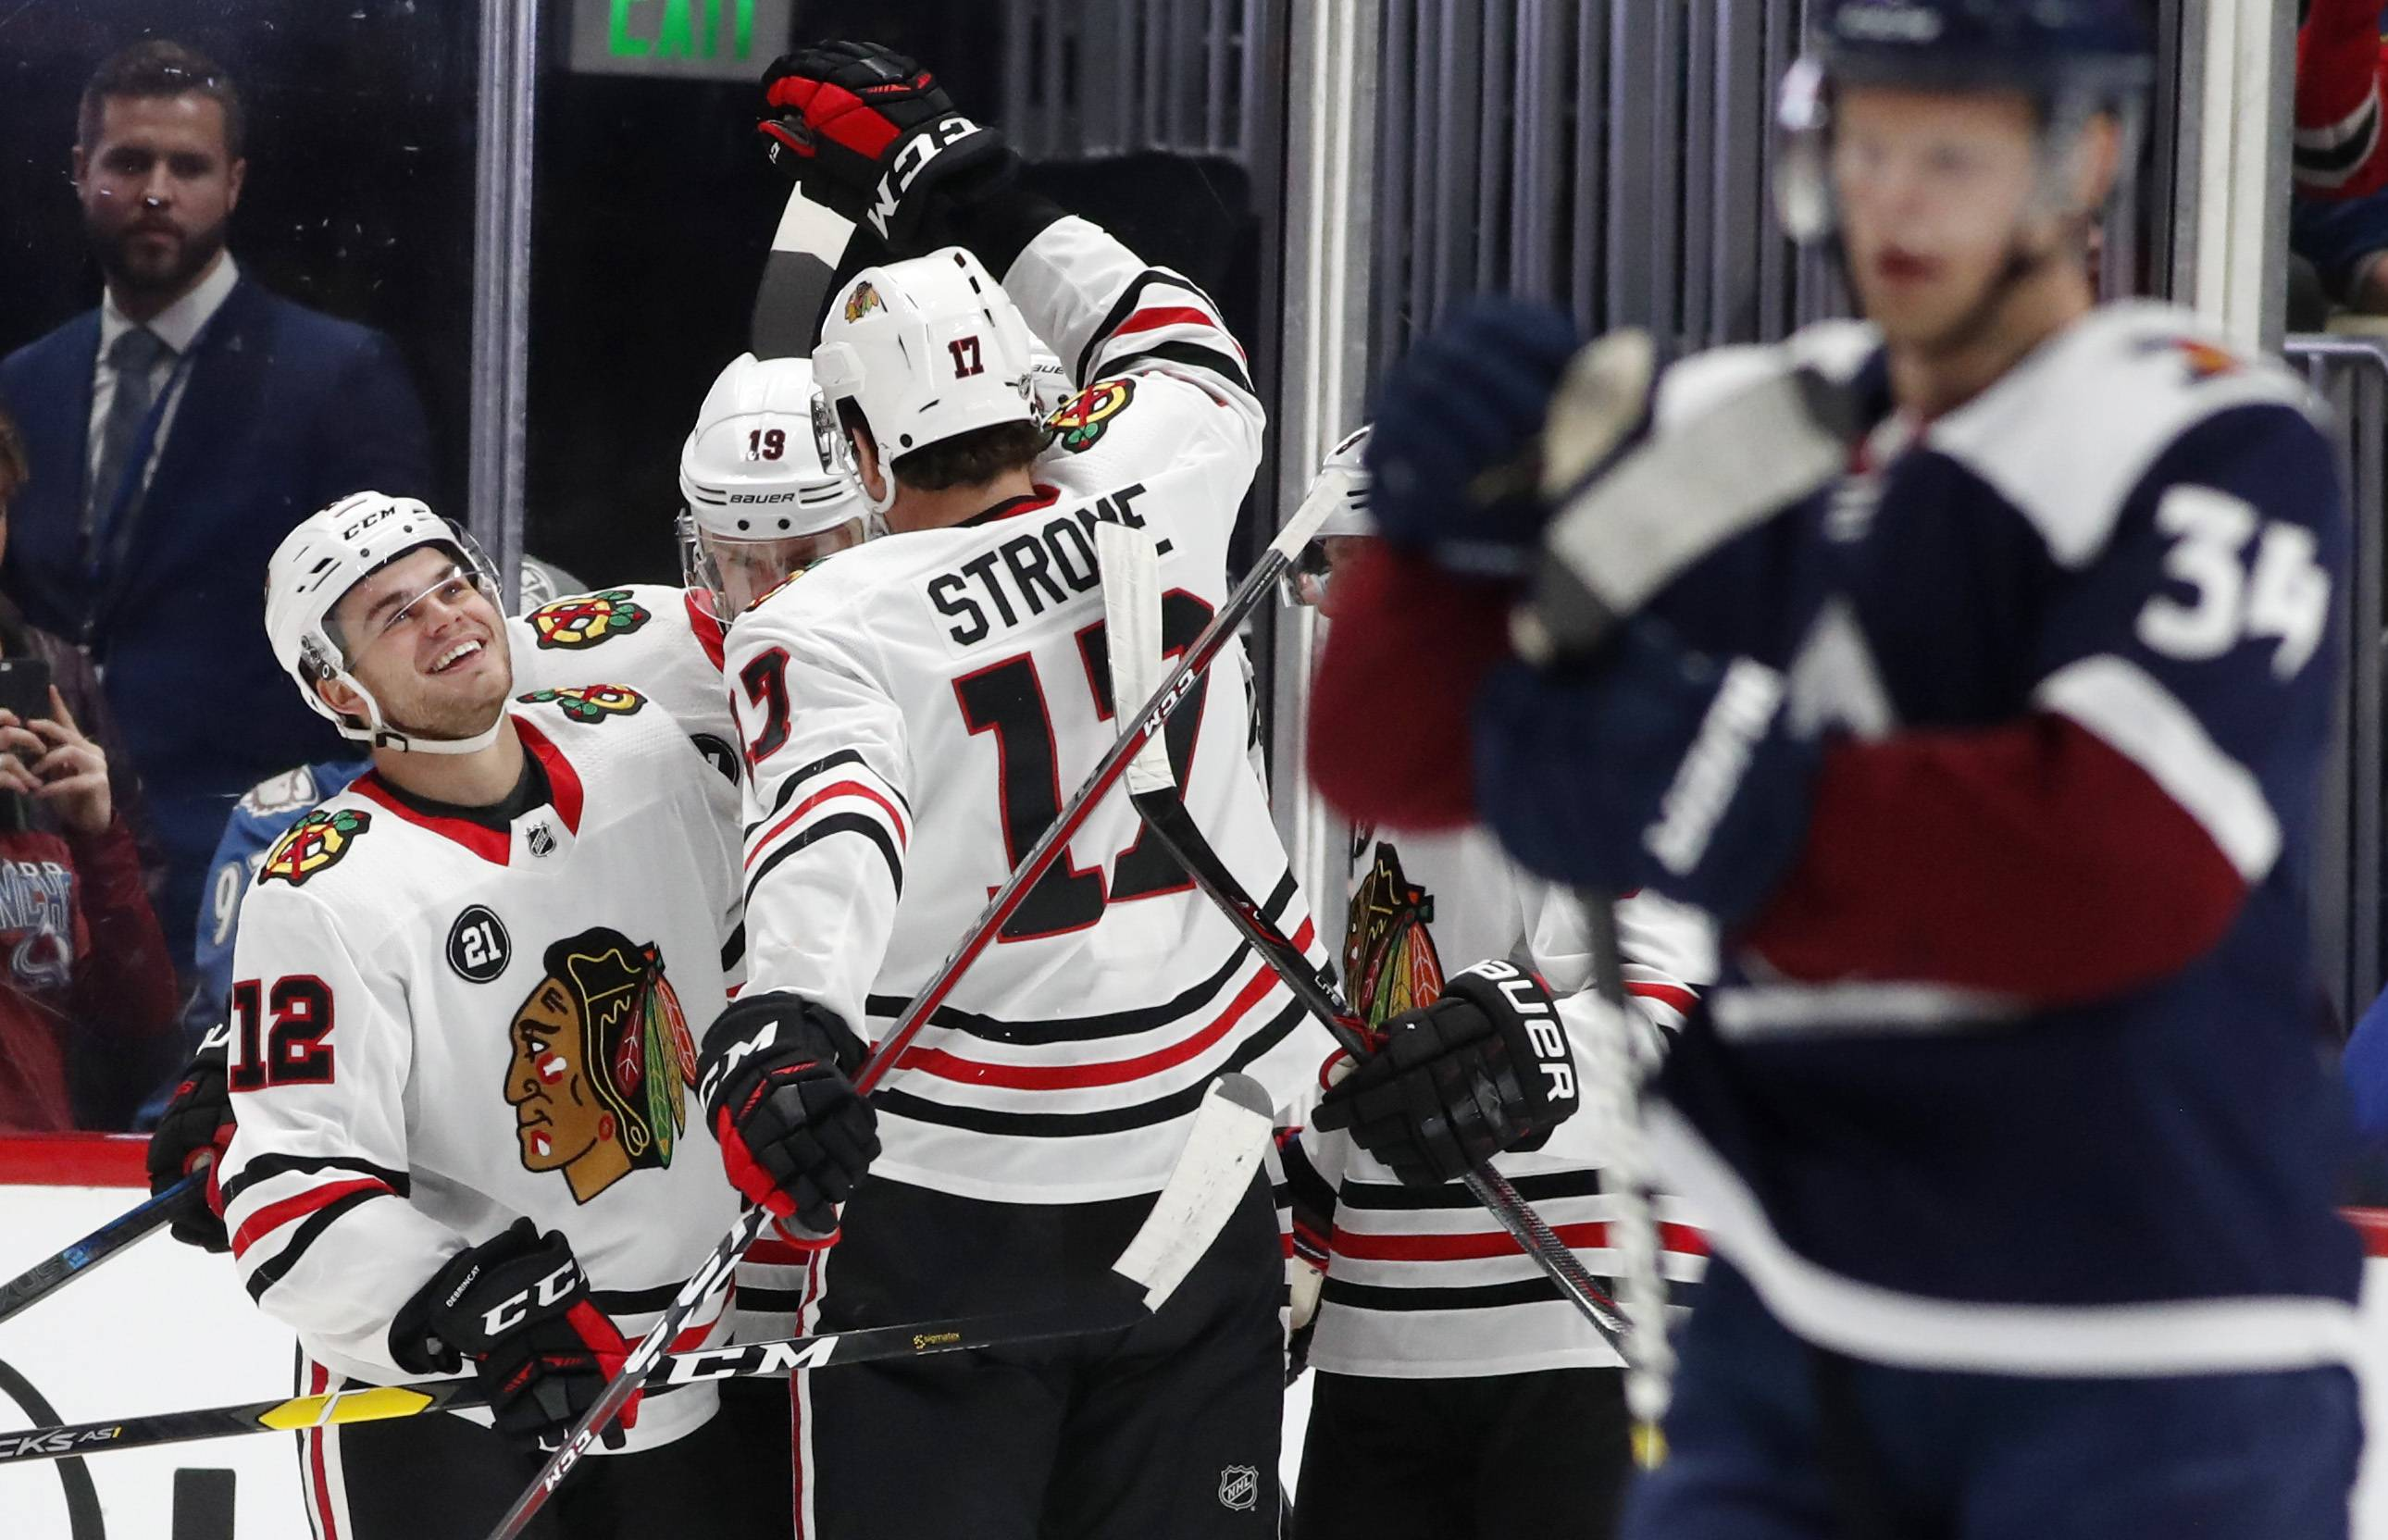 Chicago Blackhawks left wing Alex DeBrincat, left, is congratulated after scoring a goal by centers Jonathan Toews, back right, and Dylan Strome in the first period of an NHL hockey game against the Colorado Avalanche, Saturday, Dec. 29, 2018, in Denver.